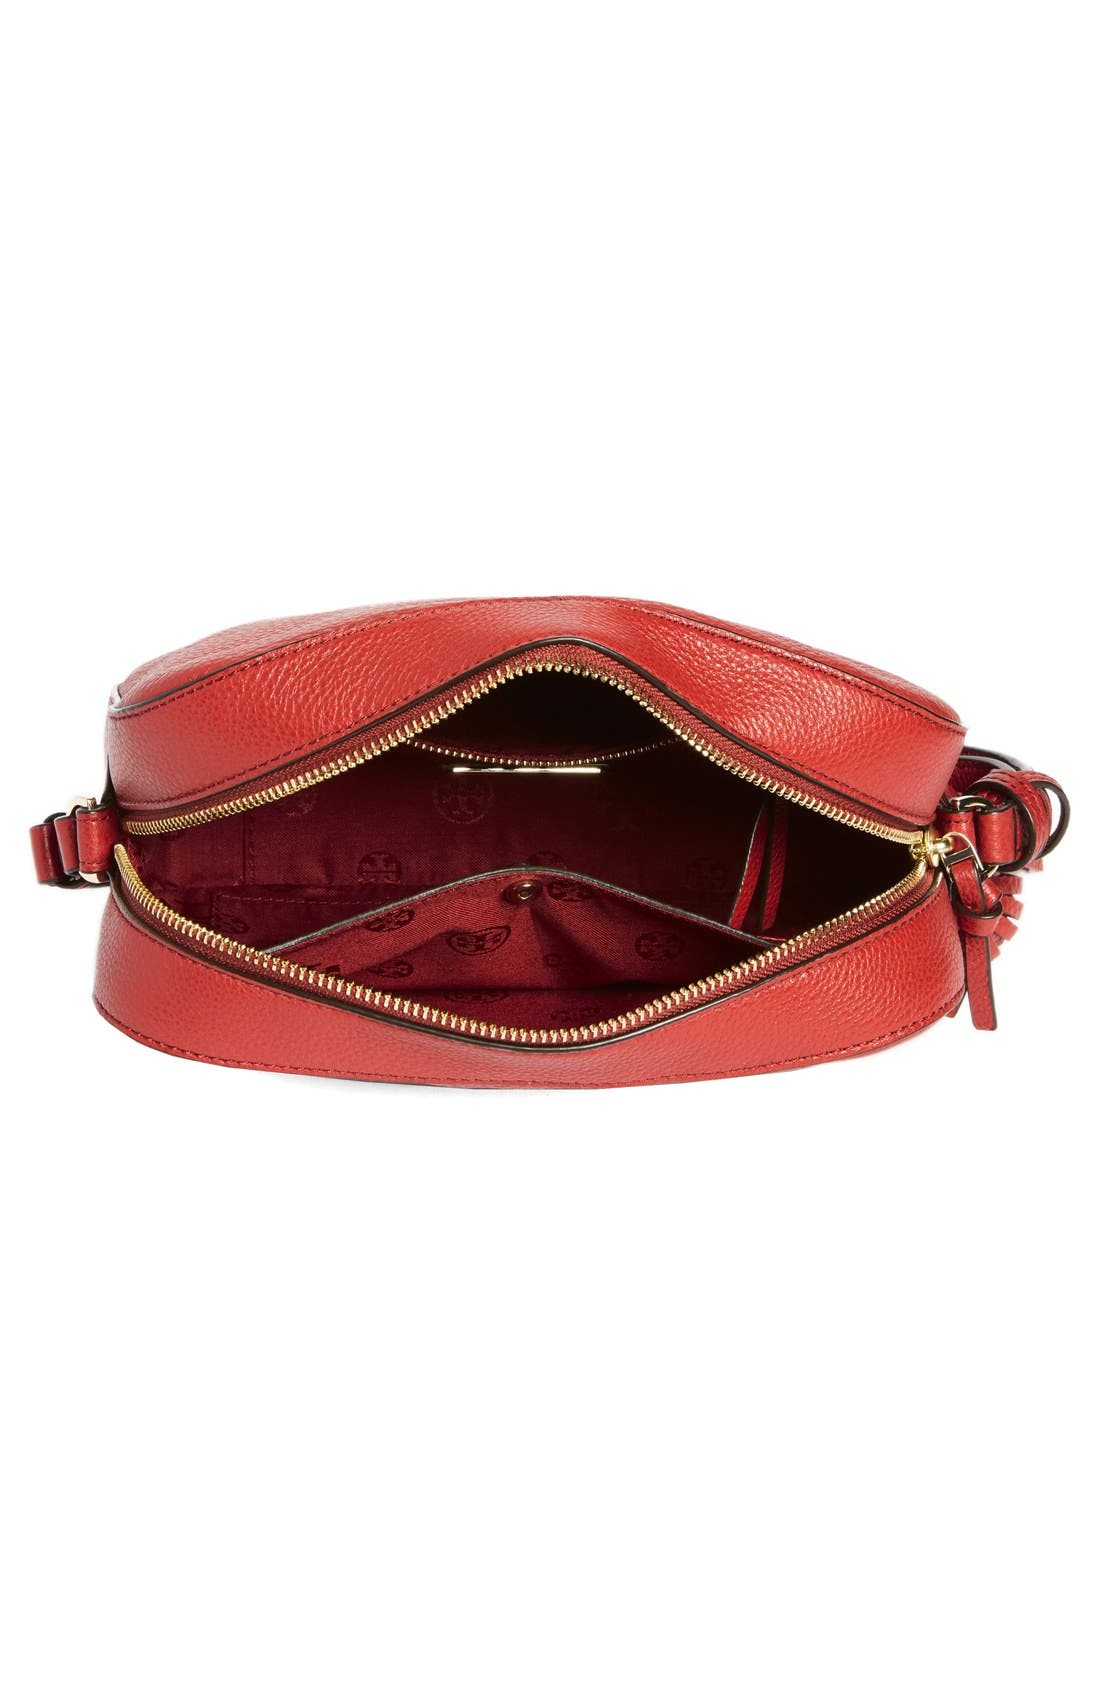 Alternate Image 4  - Tory Burch 'Thea' Leather Shoulder Bag